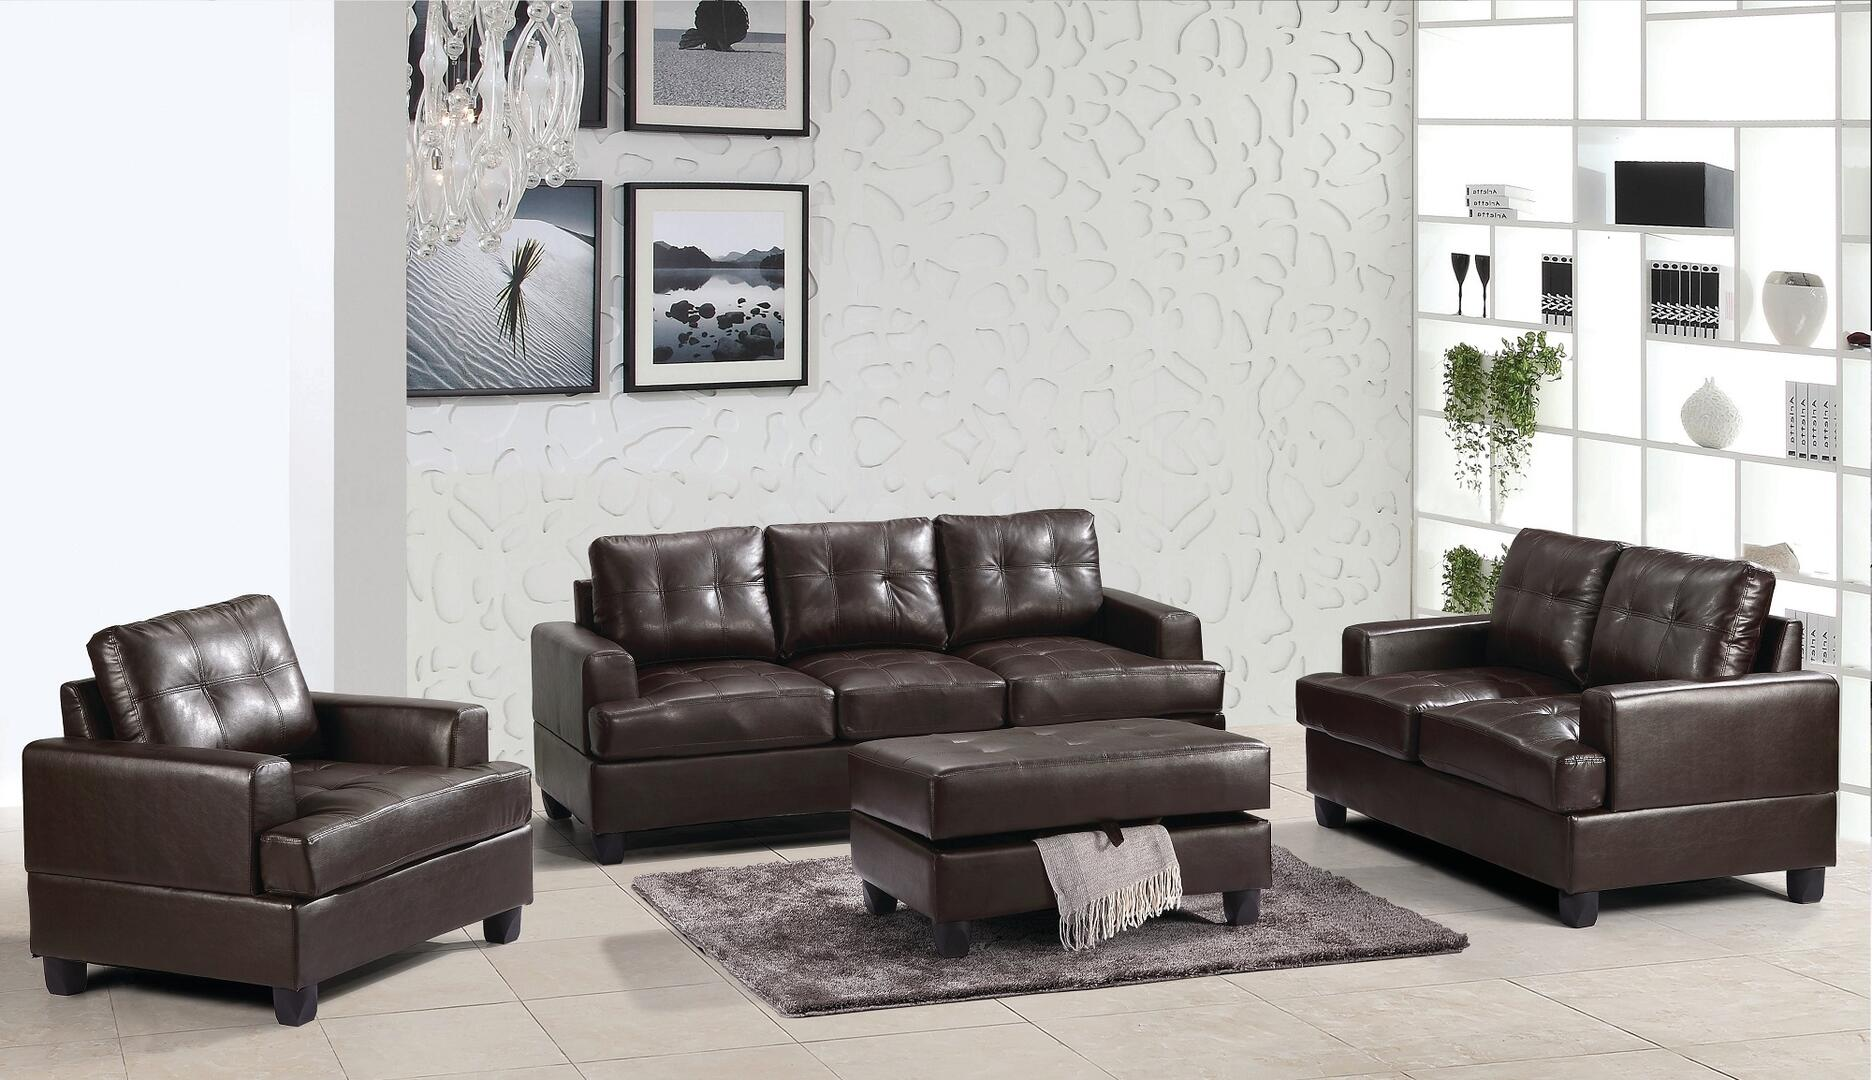 Glory furniture g585aset living room sets appliances for Furniture connection